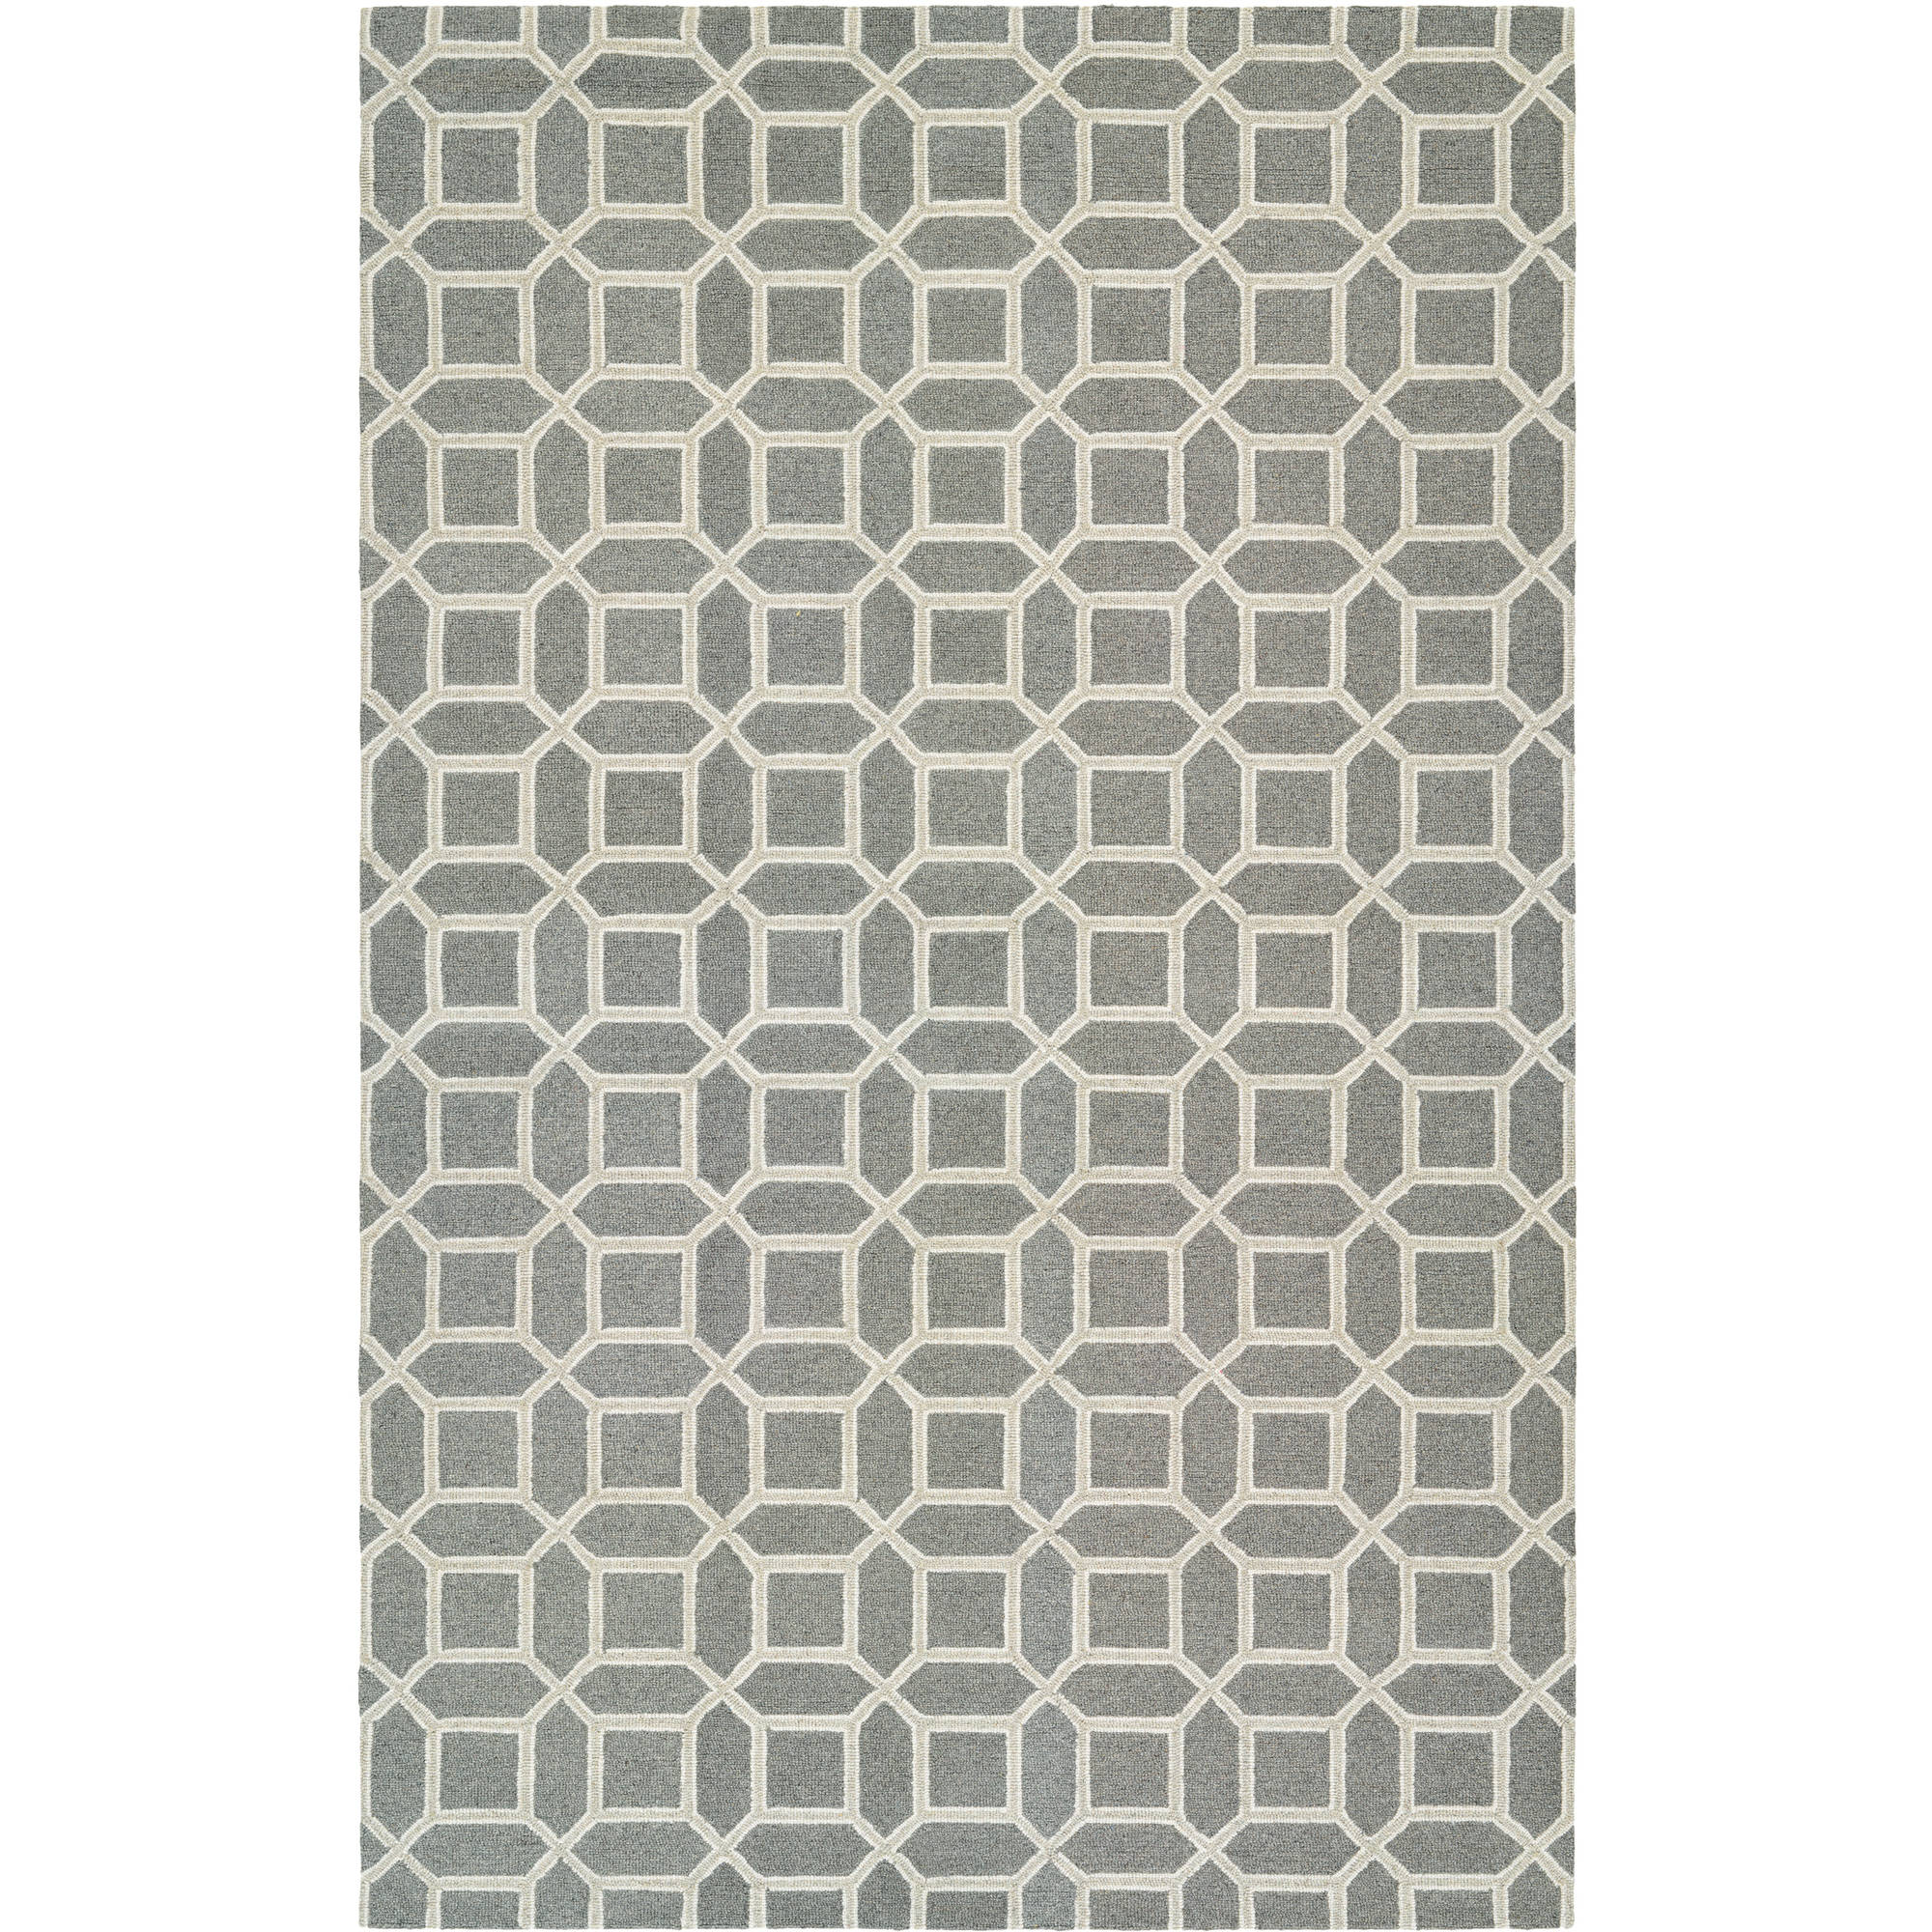 Couristan Bowery Havemeyer/Charcoal-Grey Rug